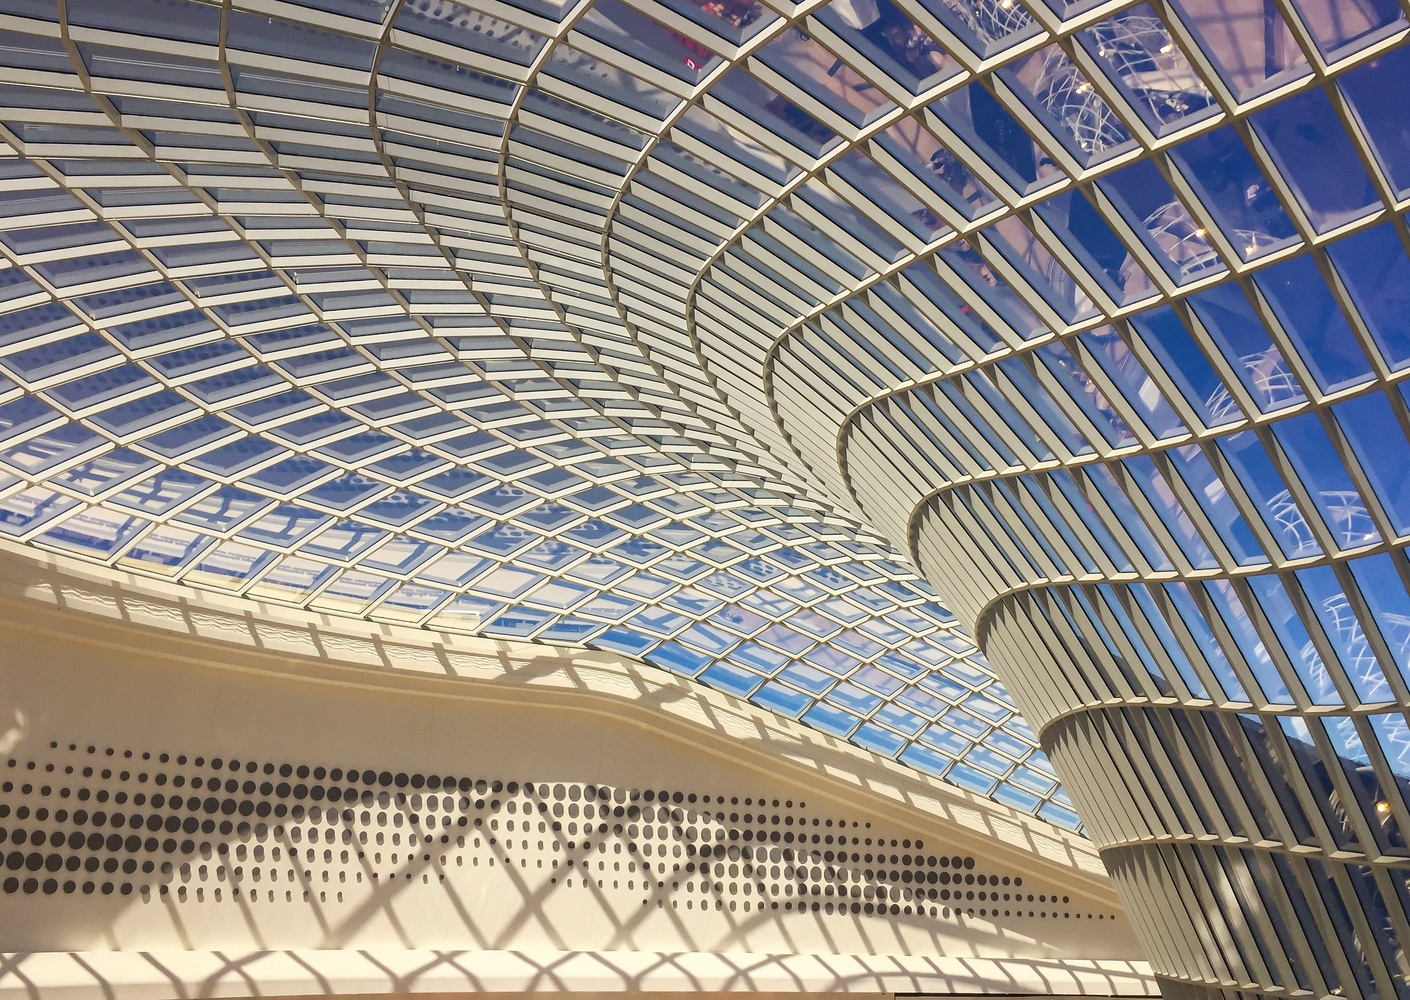 Ceiling construction @ Chadstone Shopping Centre, Melbourne by Marian Pollock